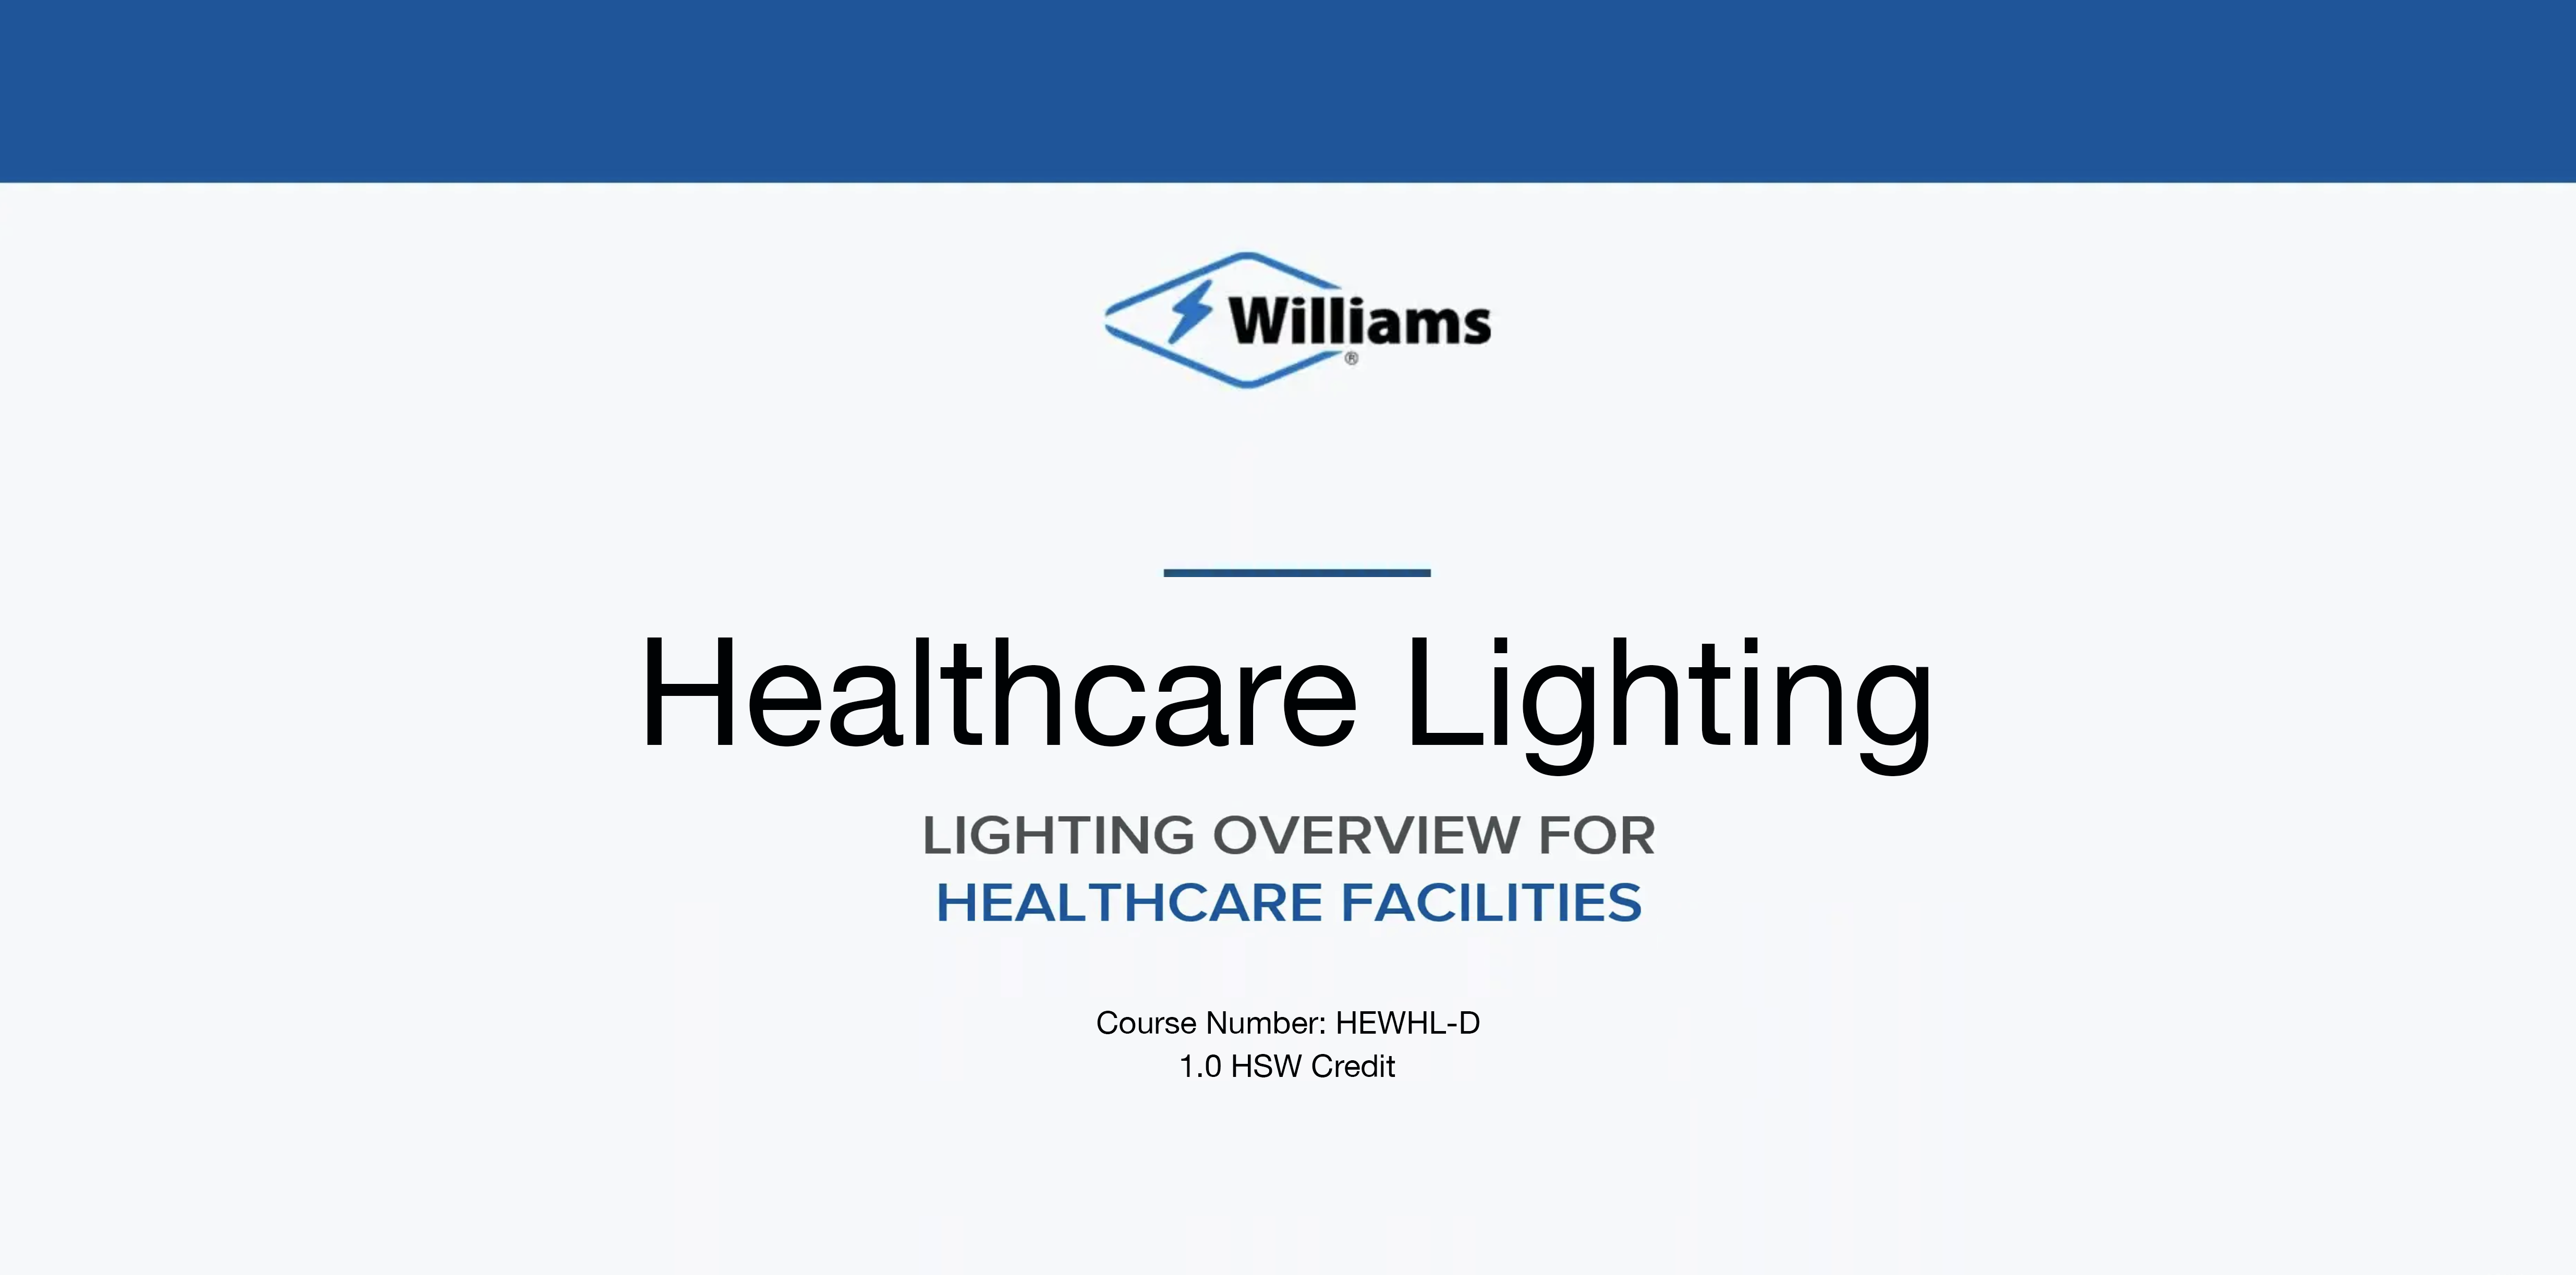 5f660fc08e932_Healthcare Lighting.png